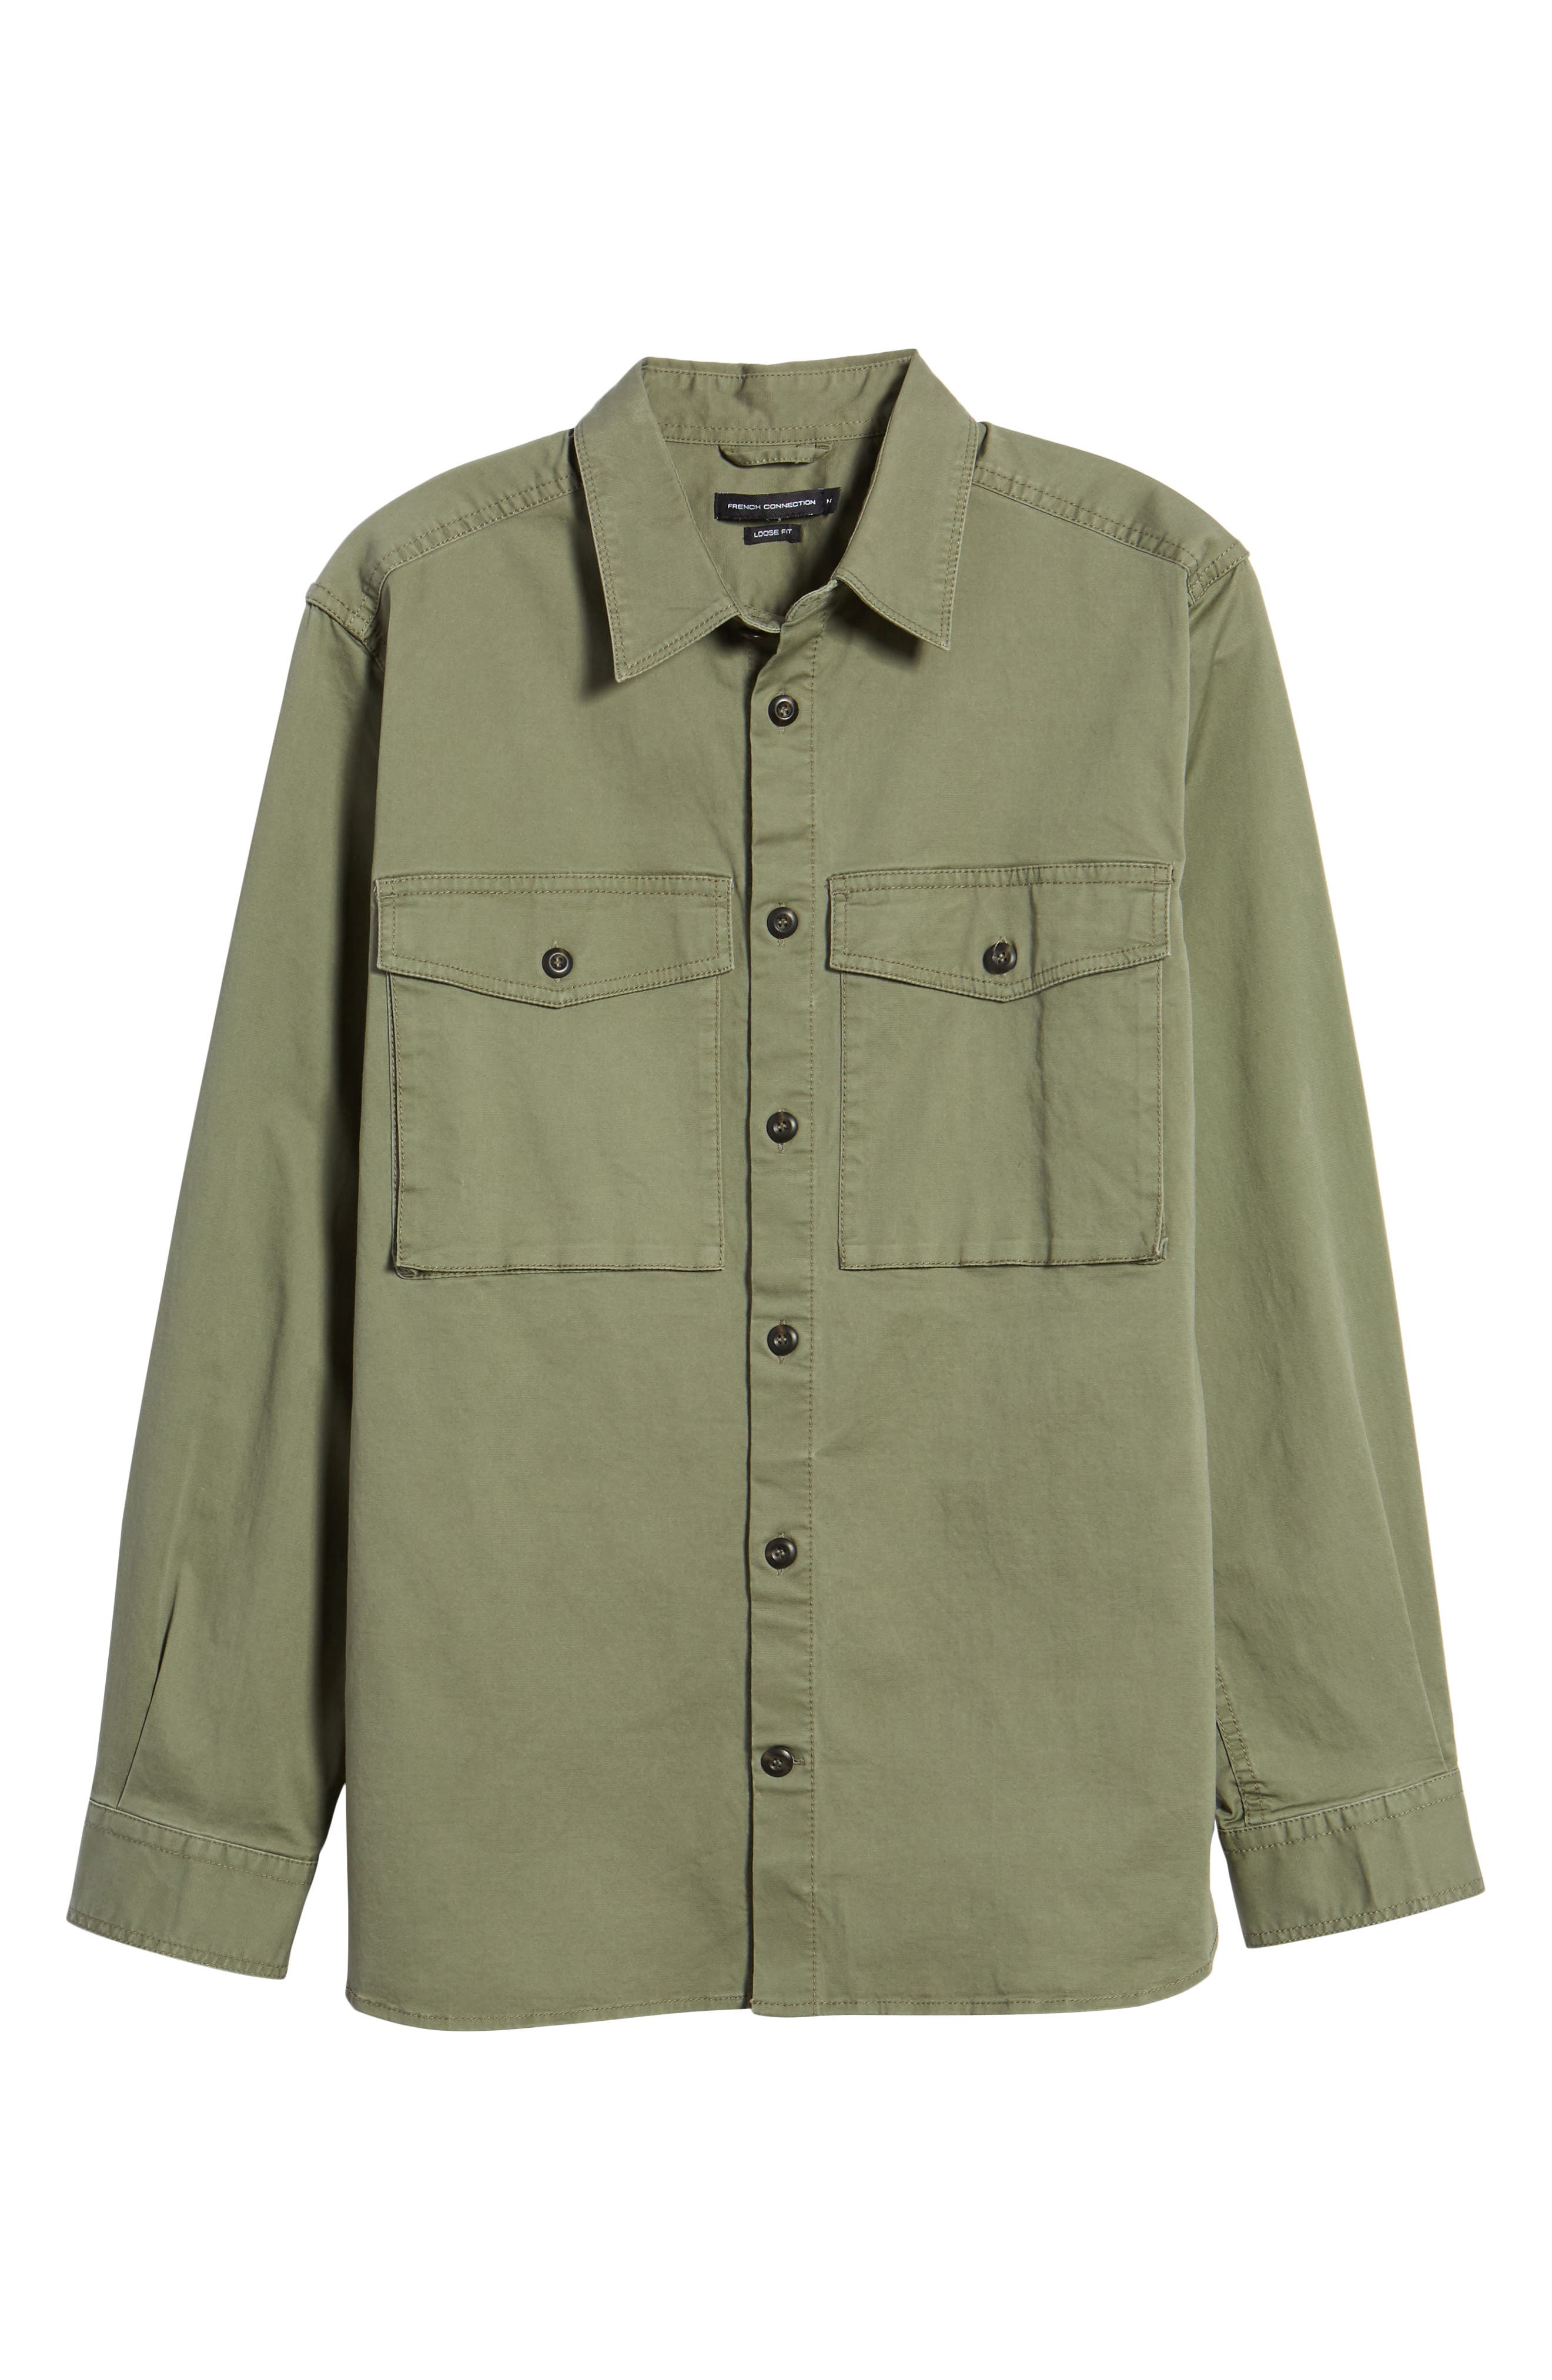 FRENCH CONNECTION,                             Twill Military Shirt Jacket,                             Alternate thumbnail 6, color,                             300